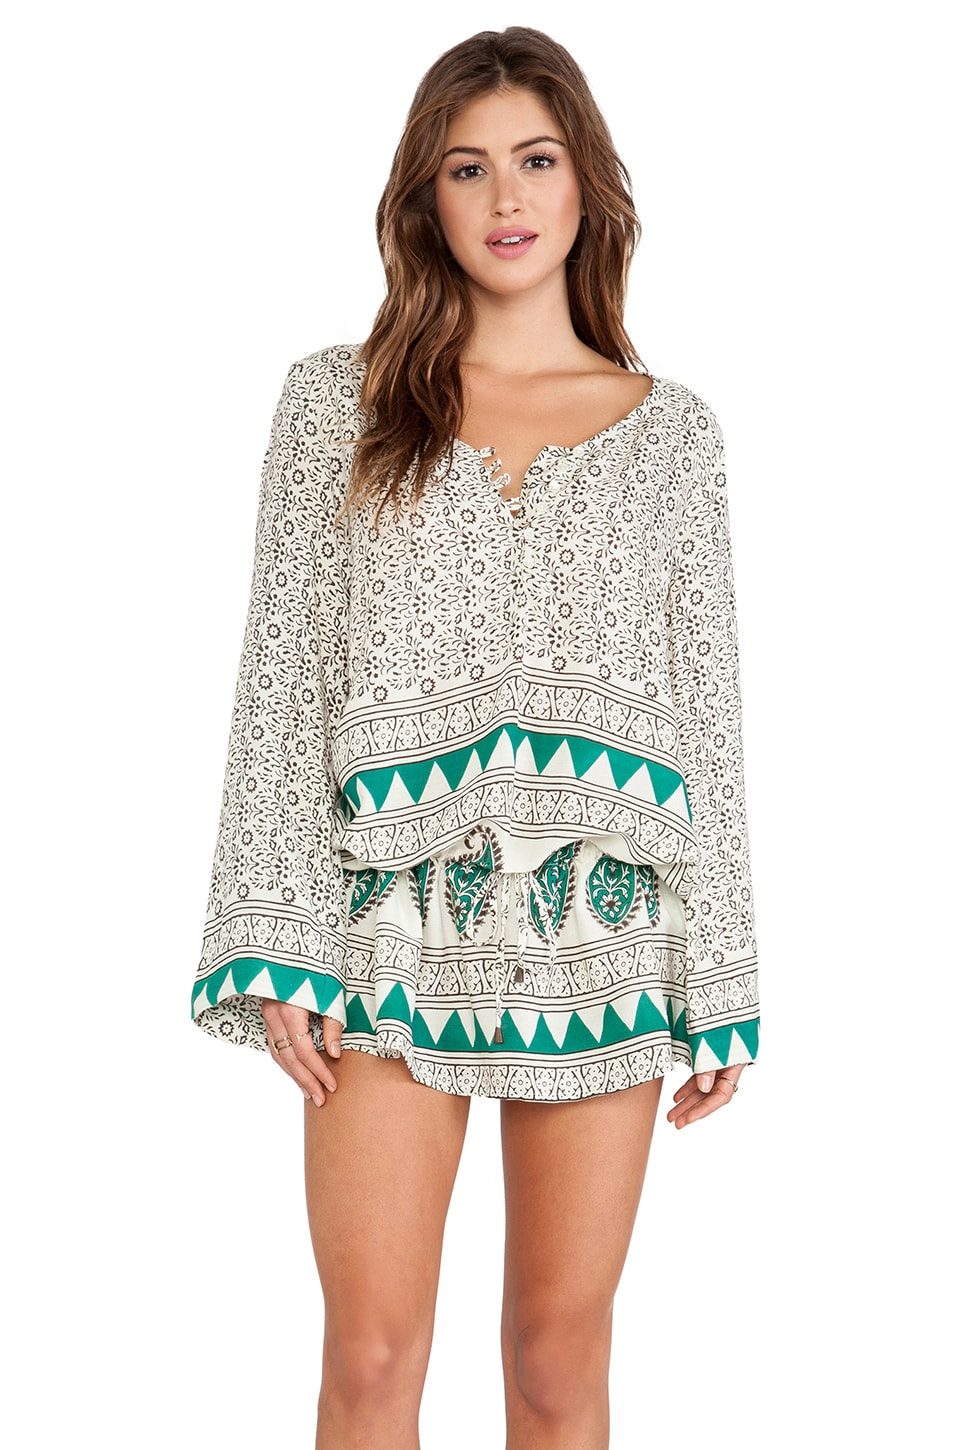 Jen's Pirate Booty Ashram Tunic in Mediterranean